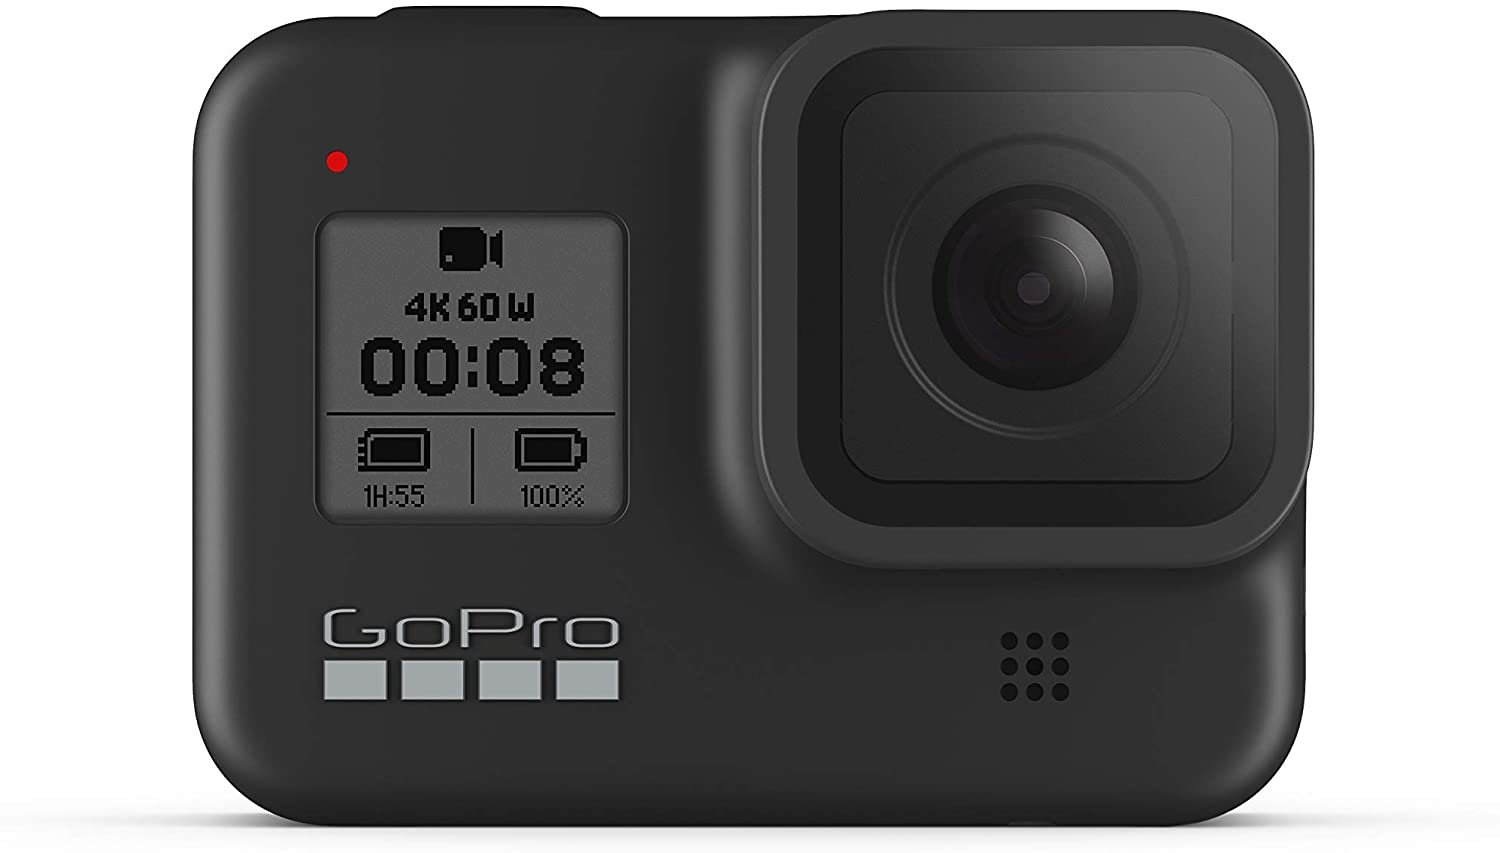 gopro HERO8 with free 32GB SD card for 249.99 When you subscribe to GoPro PLUS ($49.99)